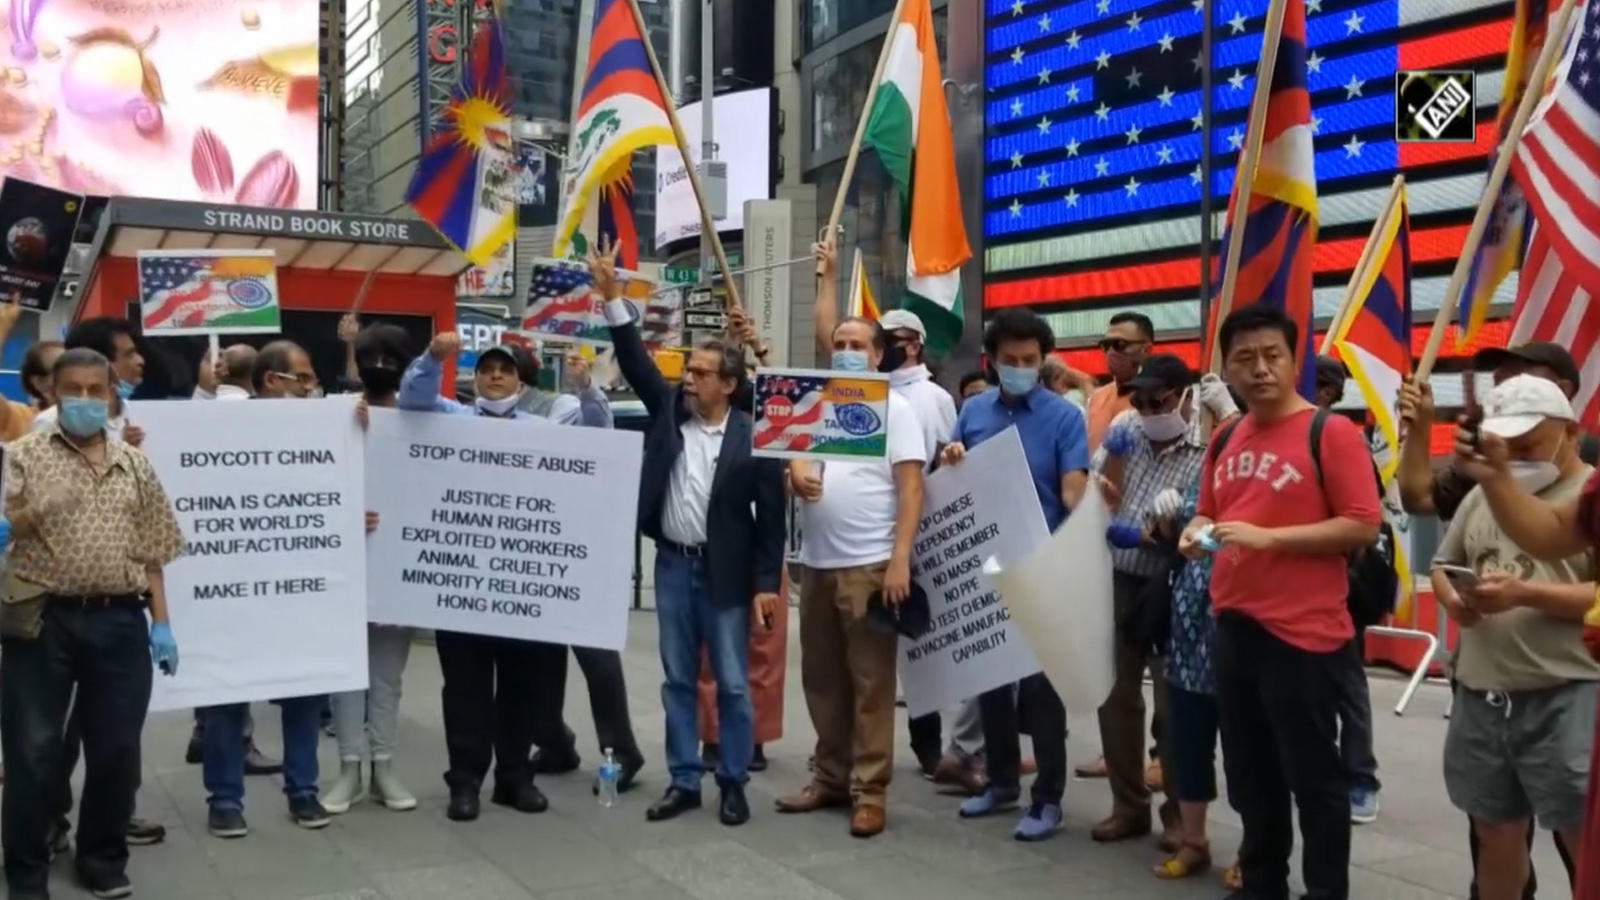 boycott-china-indian-americans-taiwanese-americans-tibetans-take-to-times-square-to-denounce-china